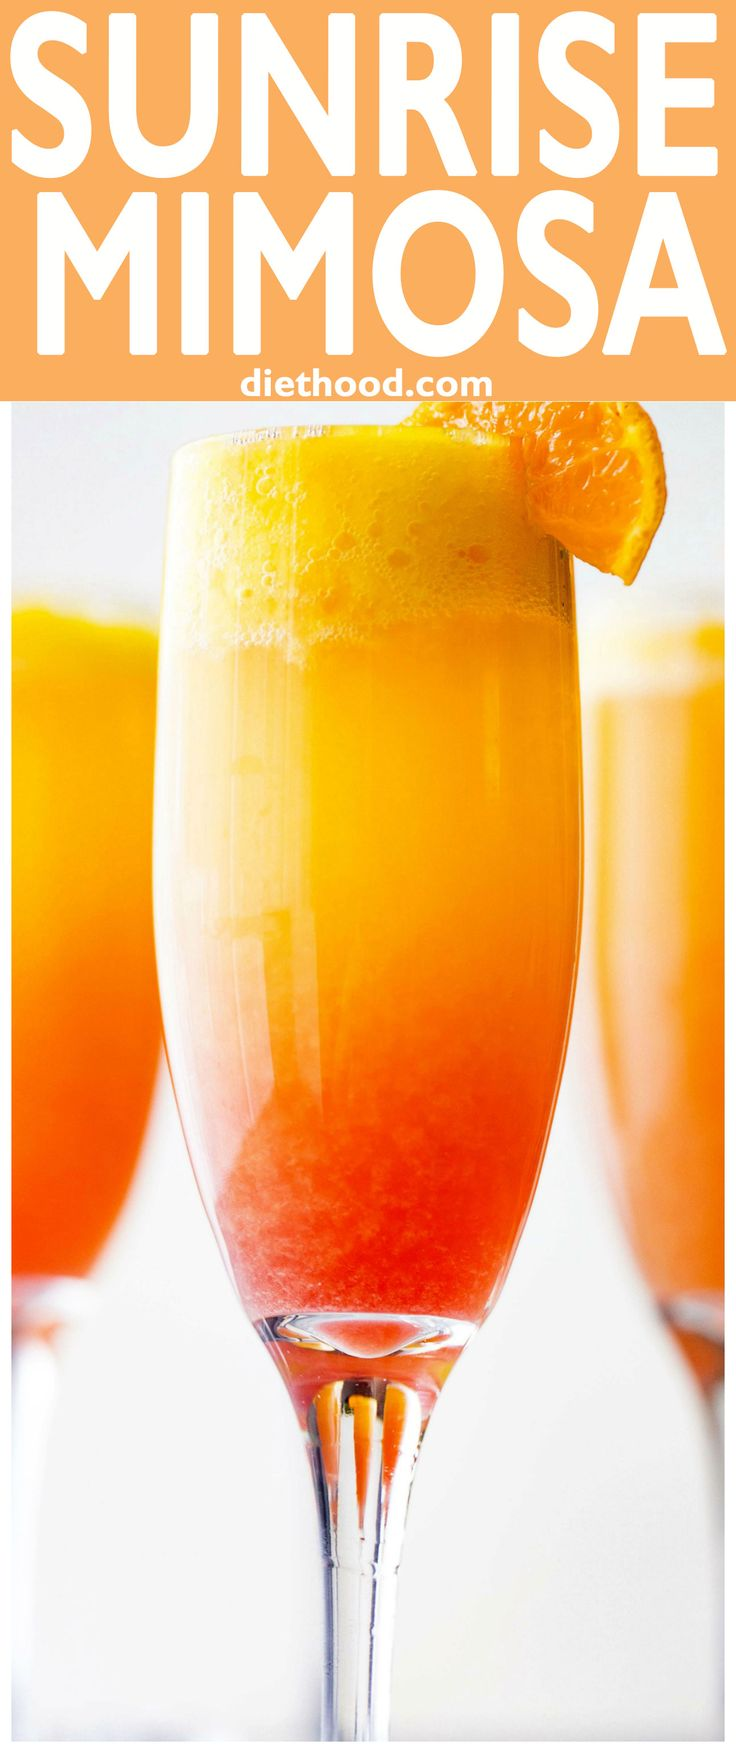 Sunrise Mimosa Recipe - A gorgeous and delicious twist to the classic mimosas prepared with mangos, orange juice, prosecco, and liqueur. A perfect Mother's Day brunch-sipper!